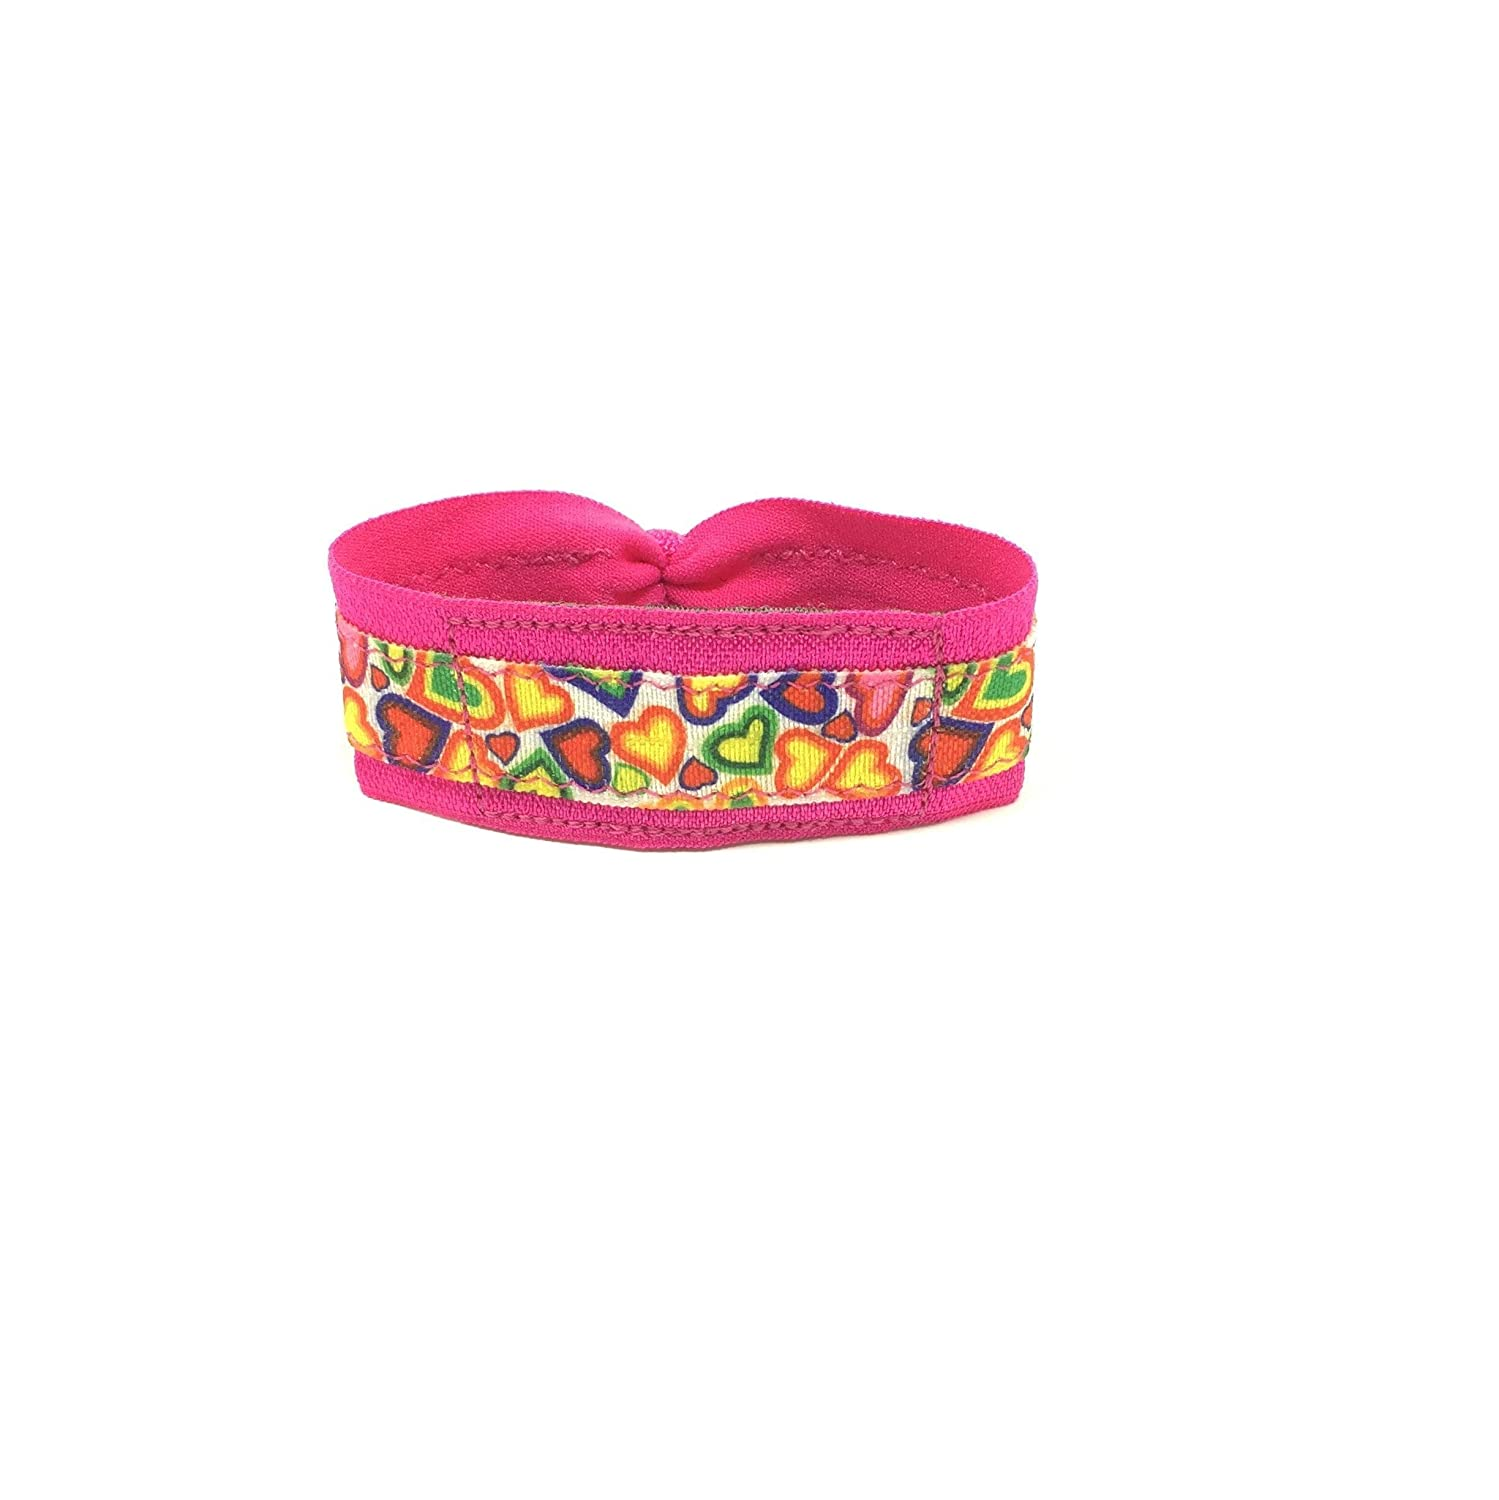 Hearts Hot Pink Wrist or Ankle Band for Fitbit Flex / Flex 2 / Alta